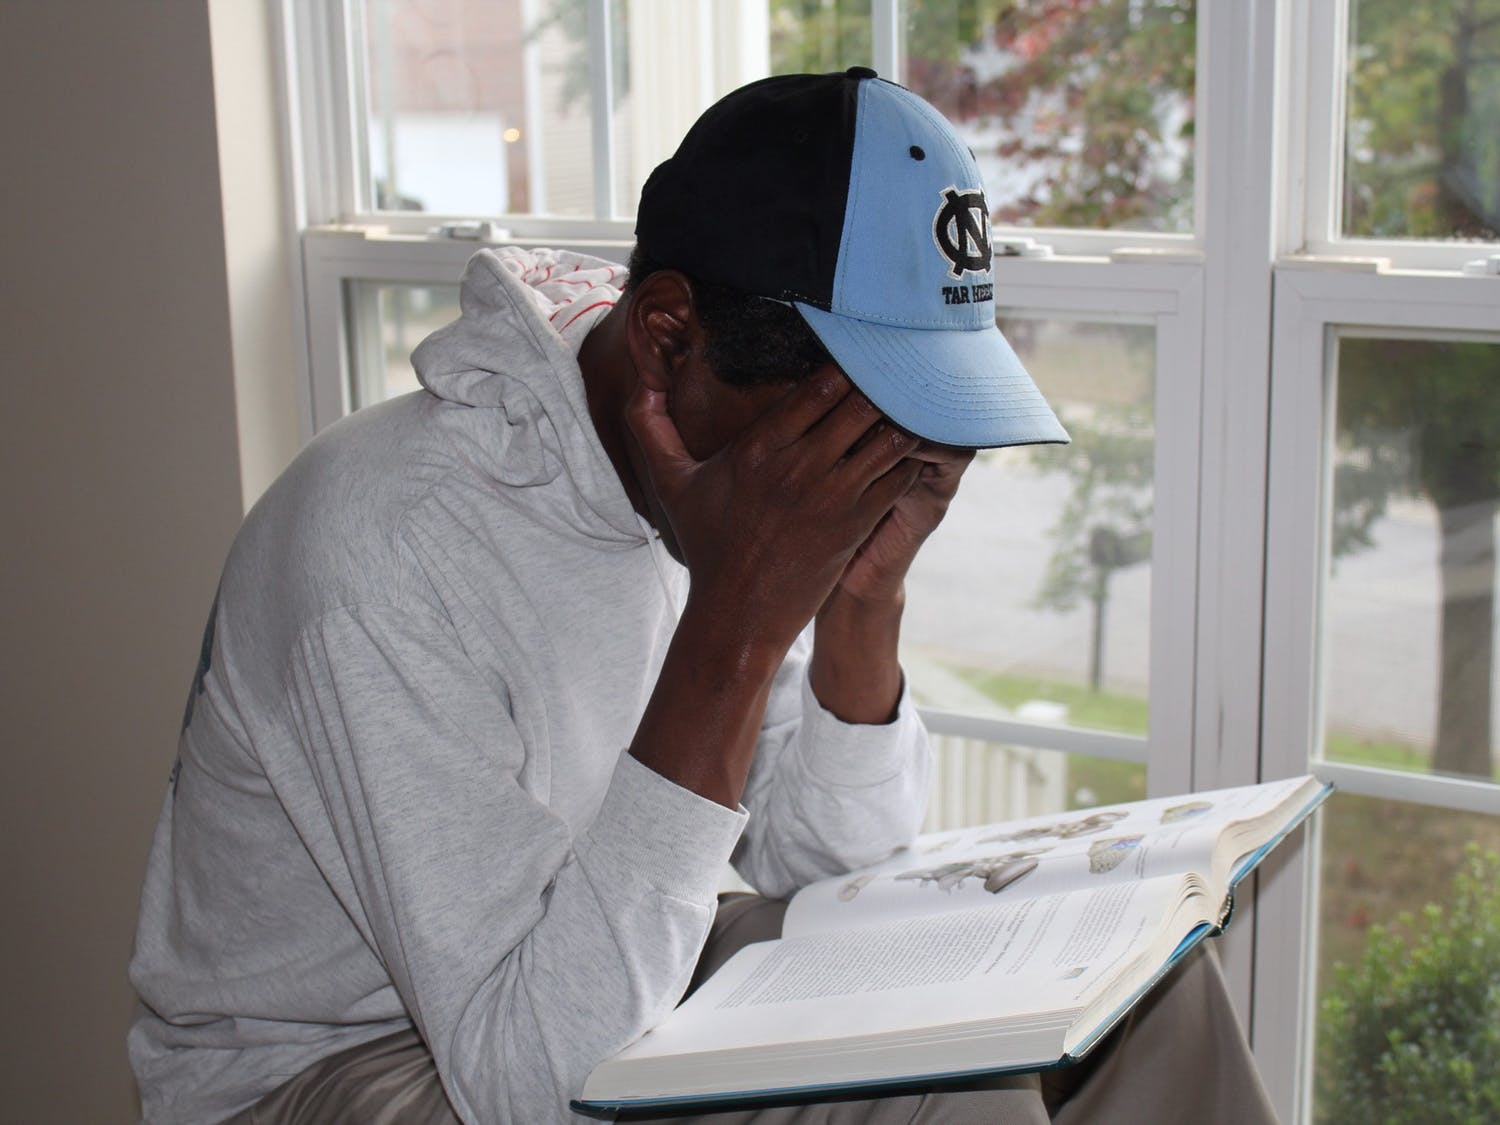 Struggles with mental health are no stranger to UNC students.